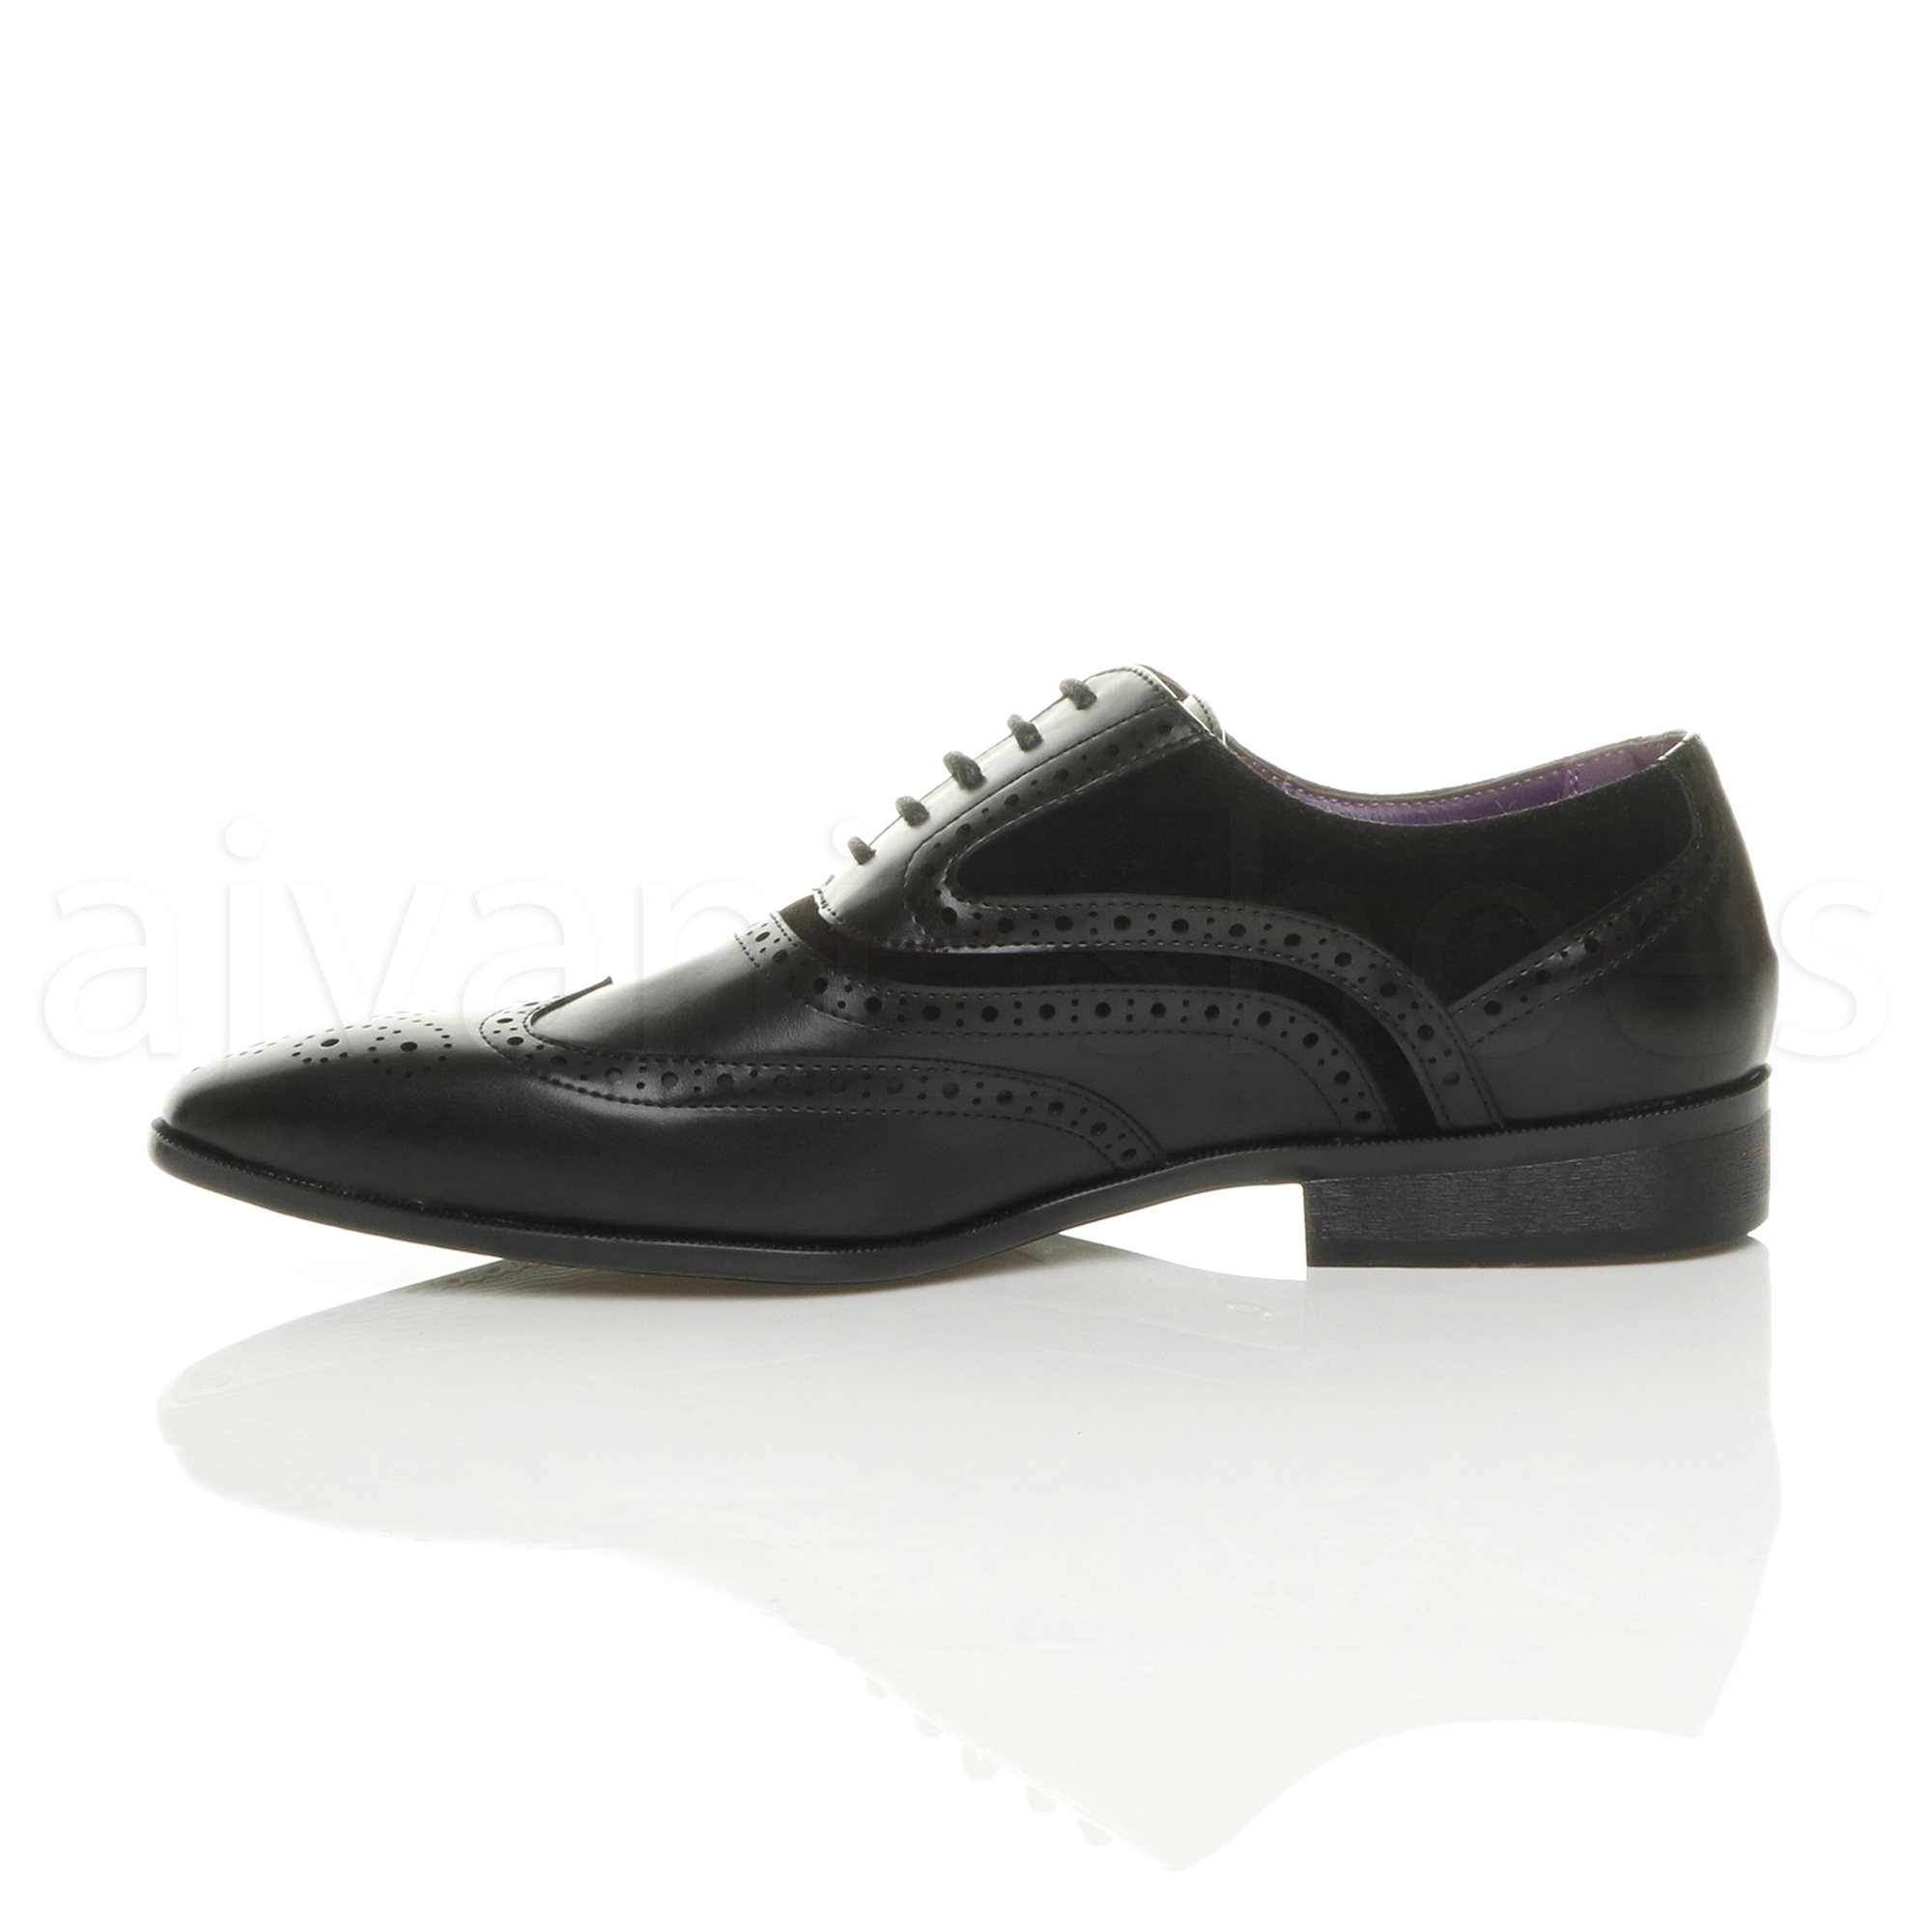 MENS-LACE-UP-CONTRAST-POINTED-TOE-SMART-CASUAL-WORK-FORMAL-BROGUE-SHOES-SIZE